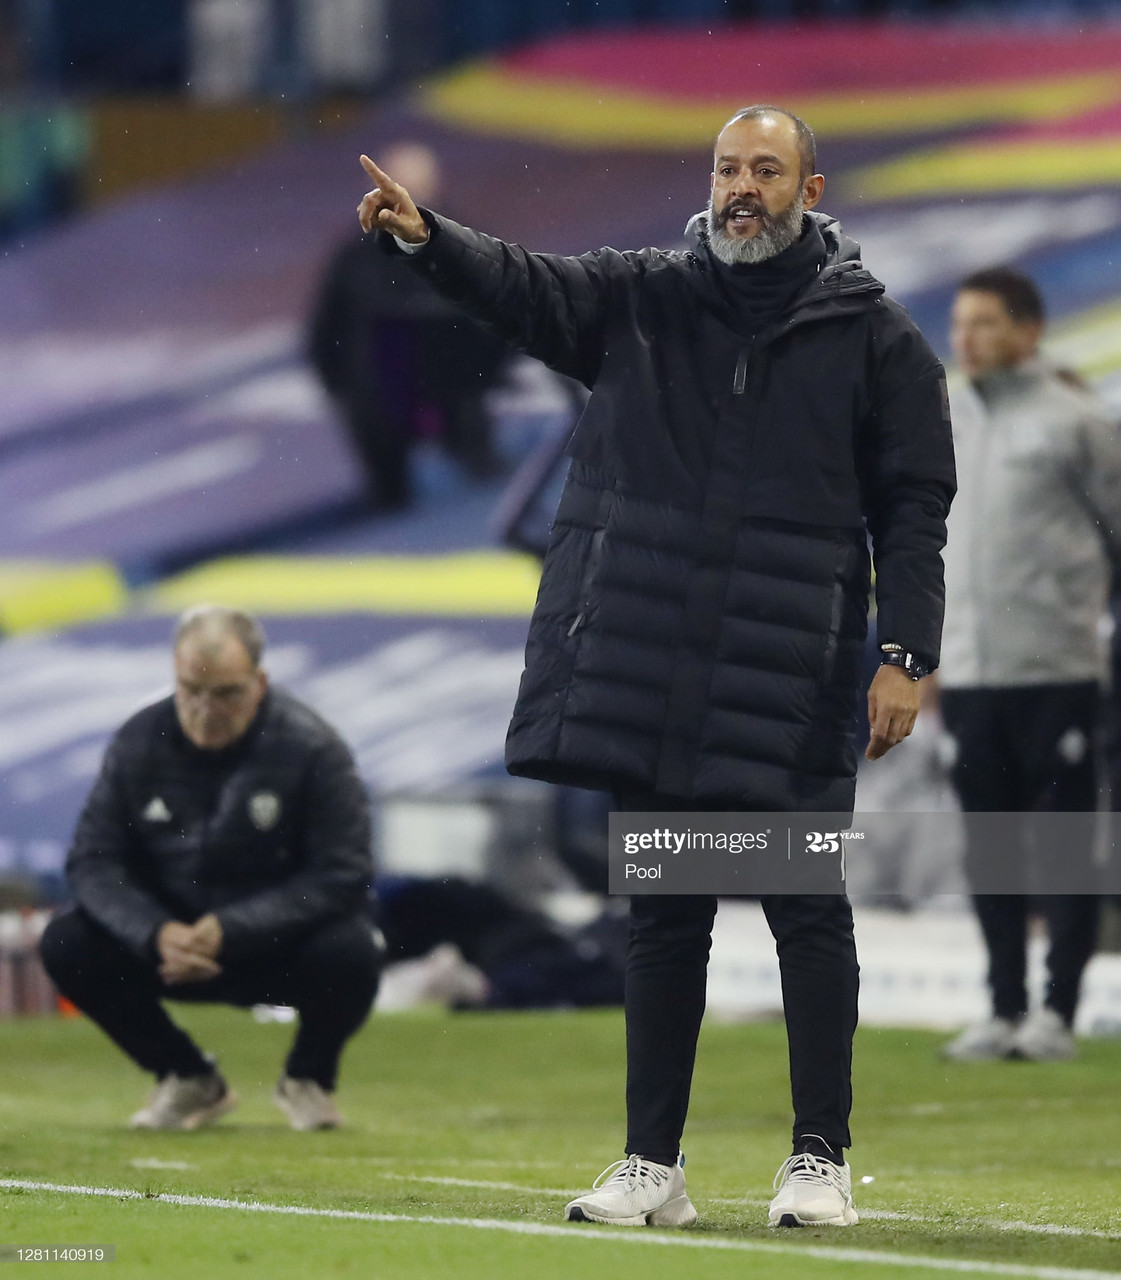 LEEDS, ENGLAND - OCTOBER 19: Nuno Espirito Santo, Manager of Wolverhampton Wanderers gives his team instructions during the Premier League match between Leeds United and Wolverhampton Wanderers at Elland Road on October 19, 2020 in Leeds, England. Sporting stadiums around the UK remain under strict restrictions due to the Coronavirus Pandemic as Government social distancing laws prohibit fans inside venues resulting in games being played behind closed doors. (Photo by Martin Rickett - Pool/Getty Images)